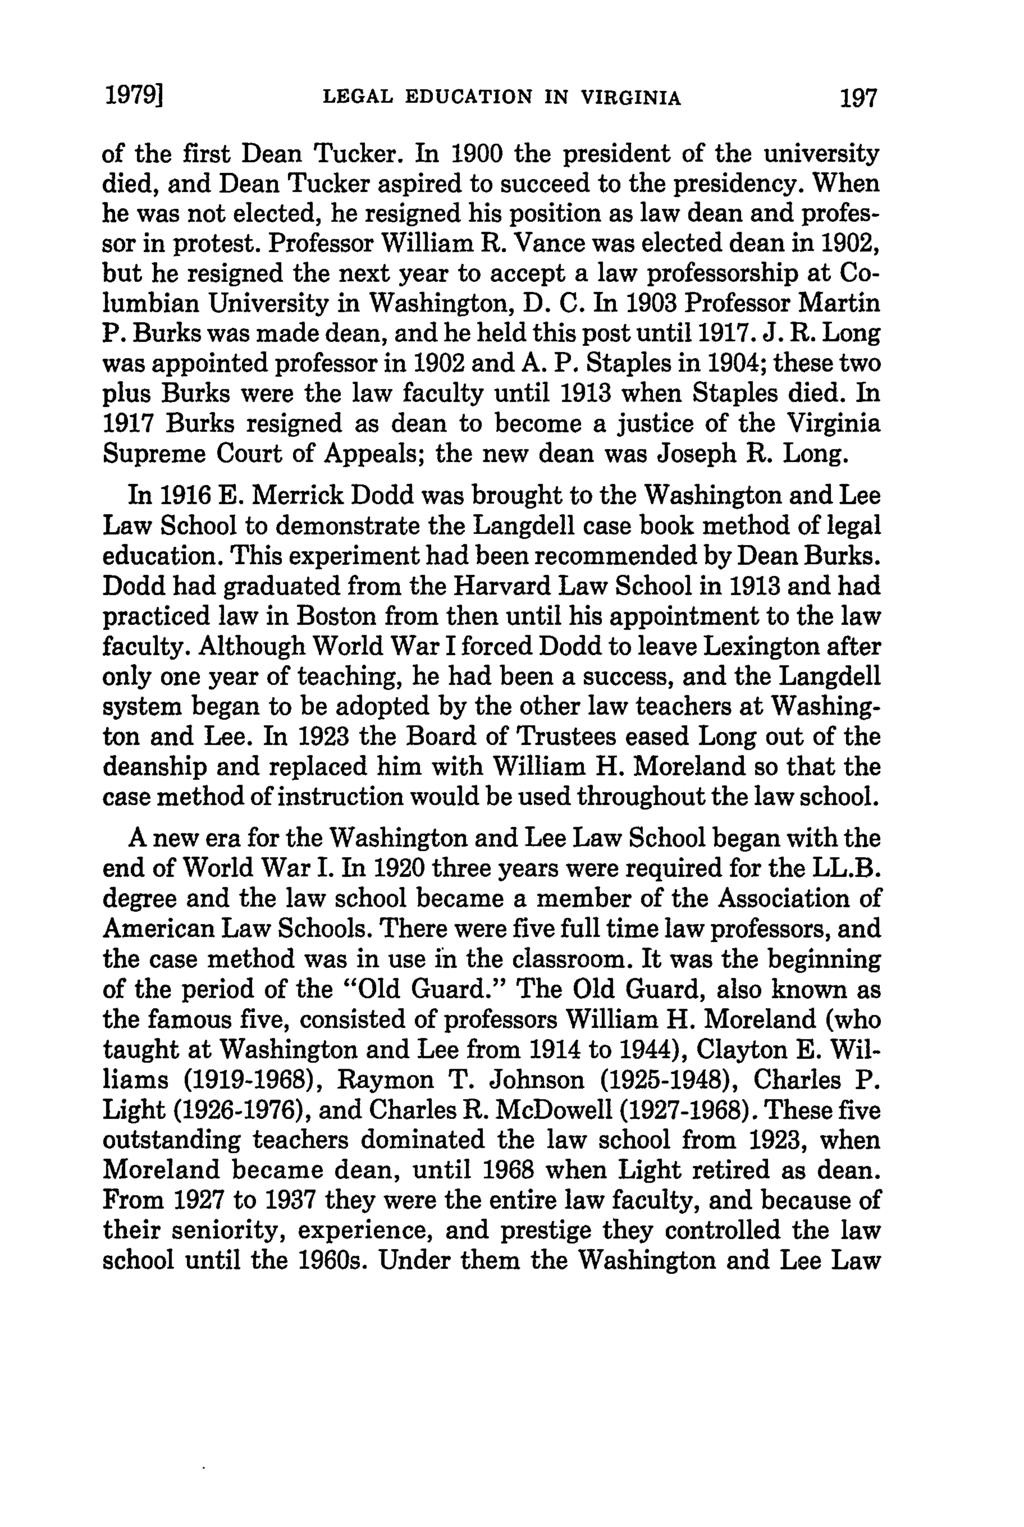 19791 LEGAL EDUCATION IN VIRGINIA of the first Dean Tucker. In 1900 the president of the university died, and Dean Tucker aspired to succeed to the presidency.